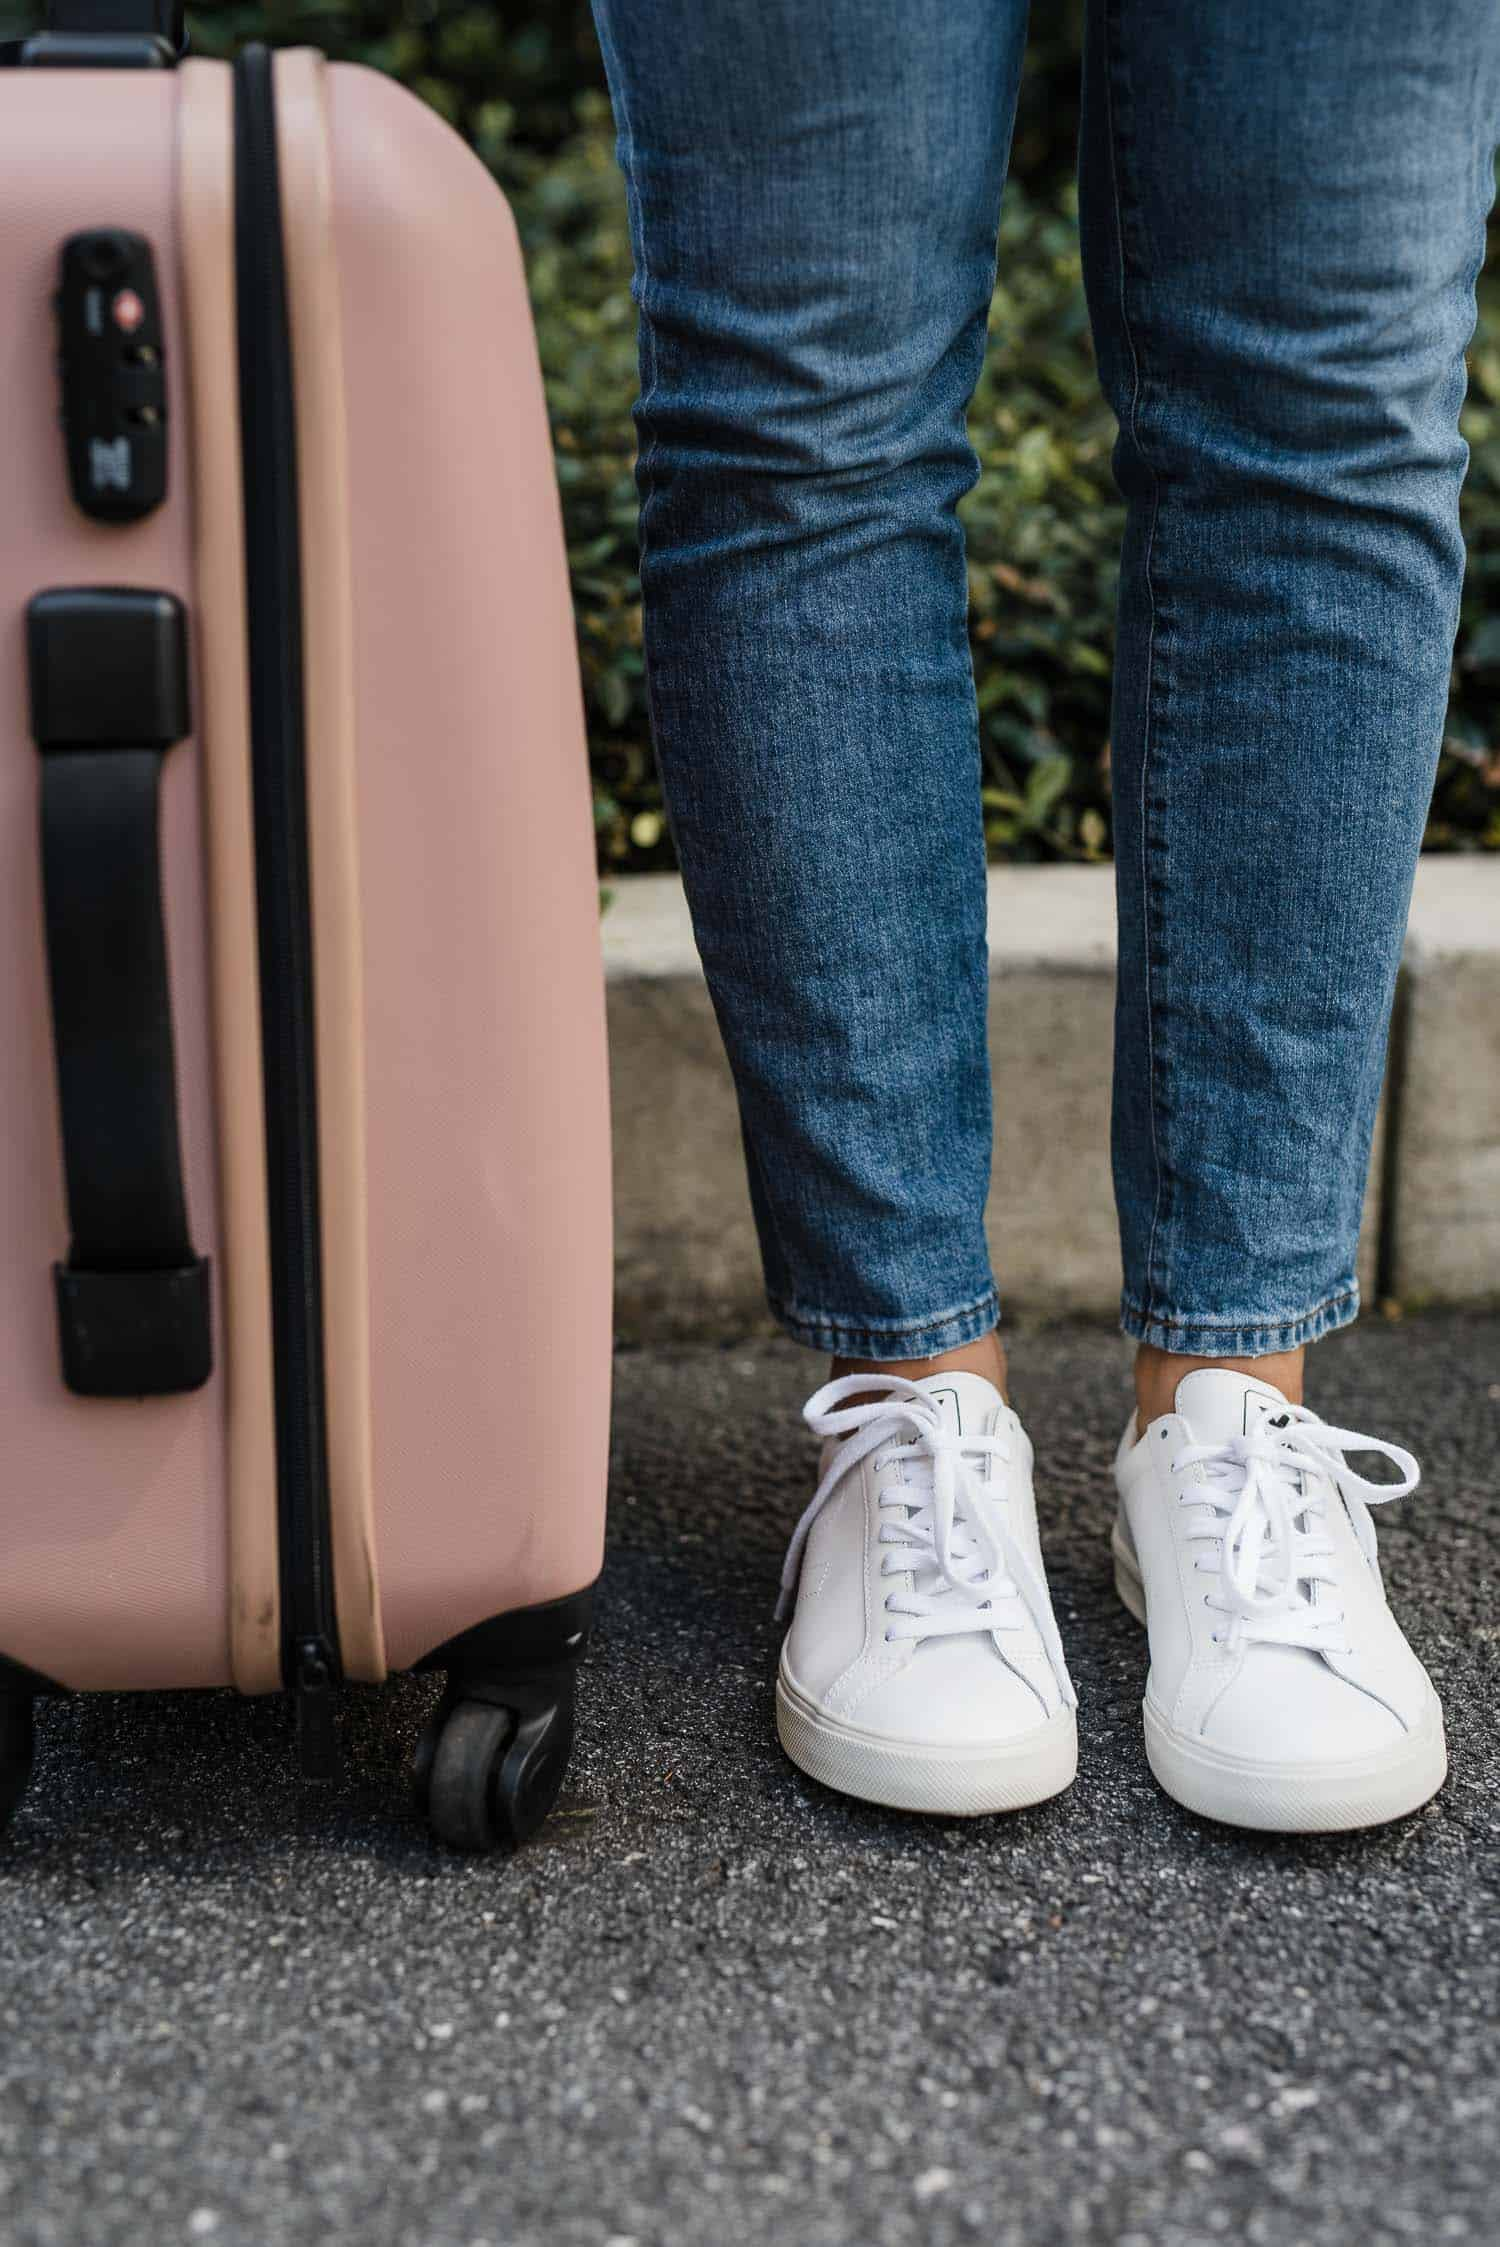 Best Travel Shoes For Women